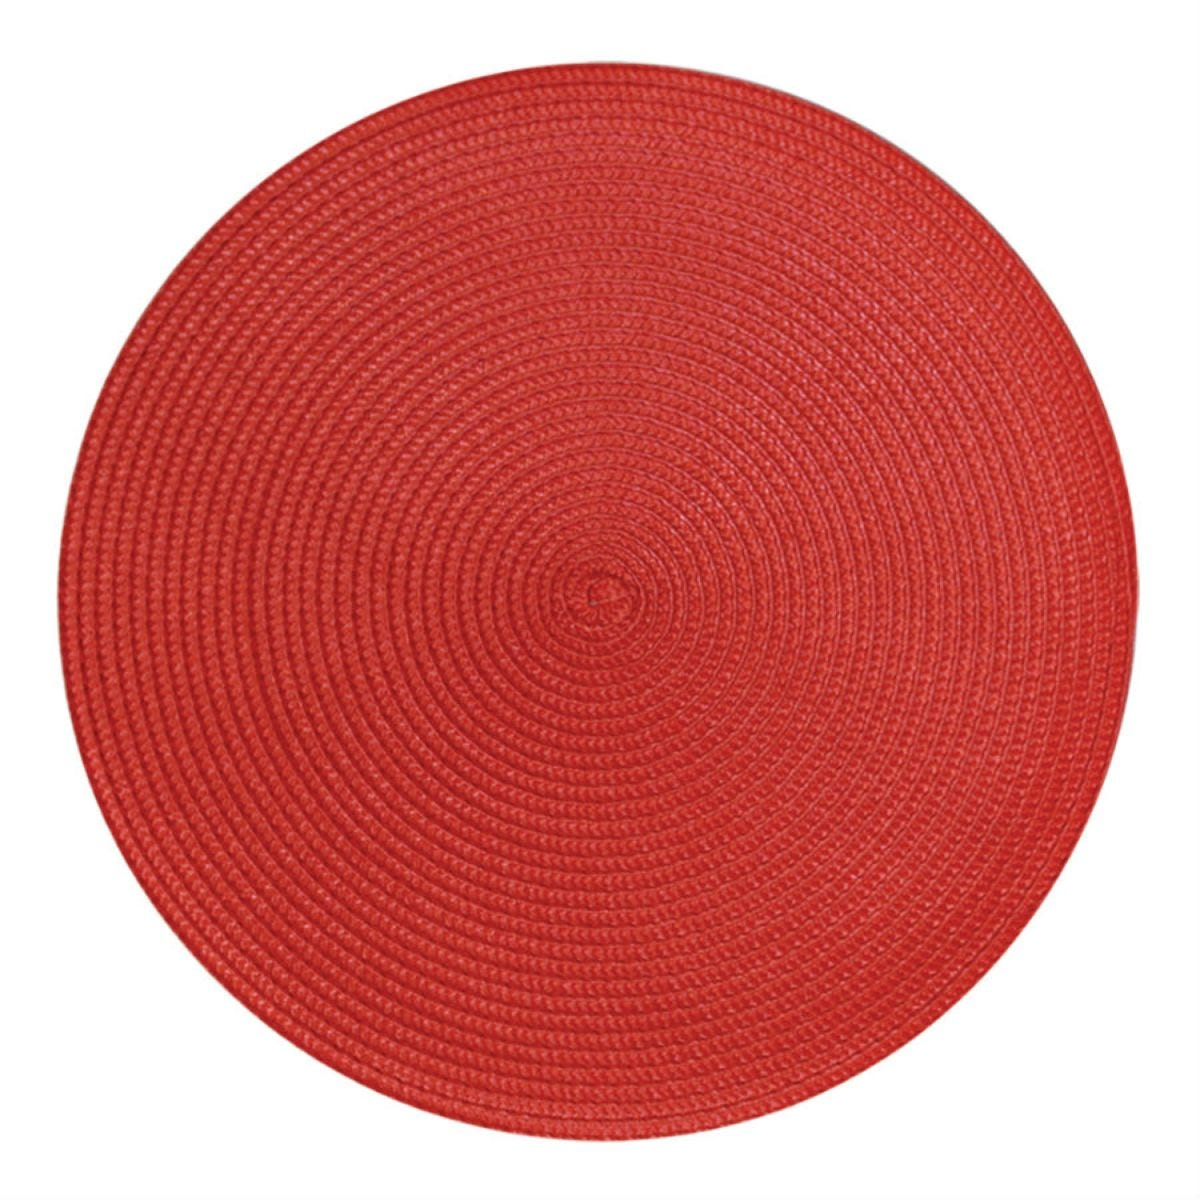 Round Woven Placemat - Red